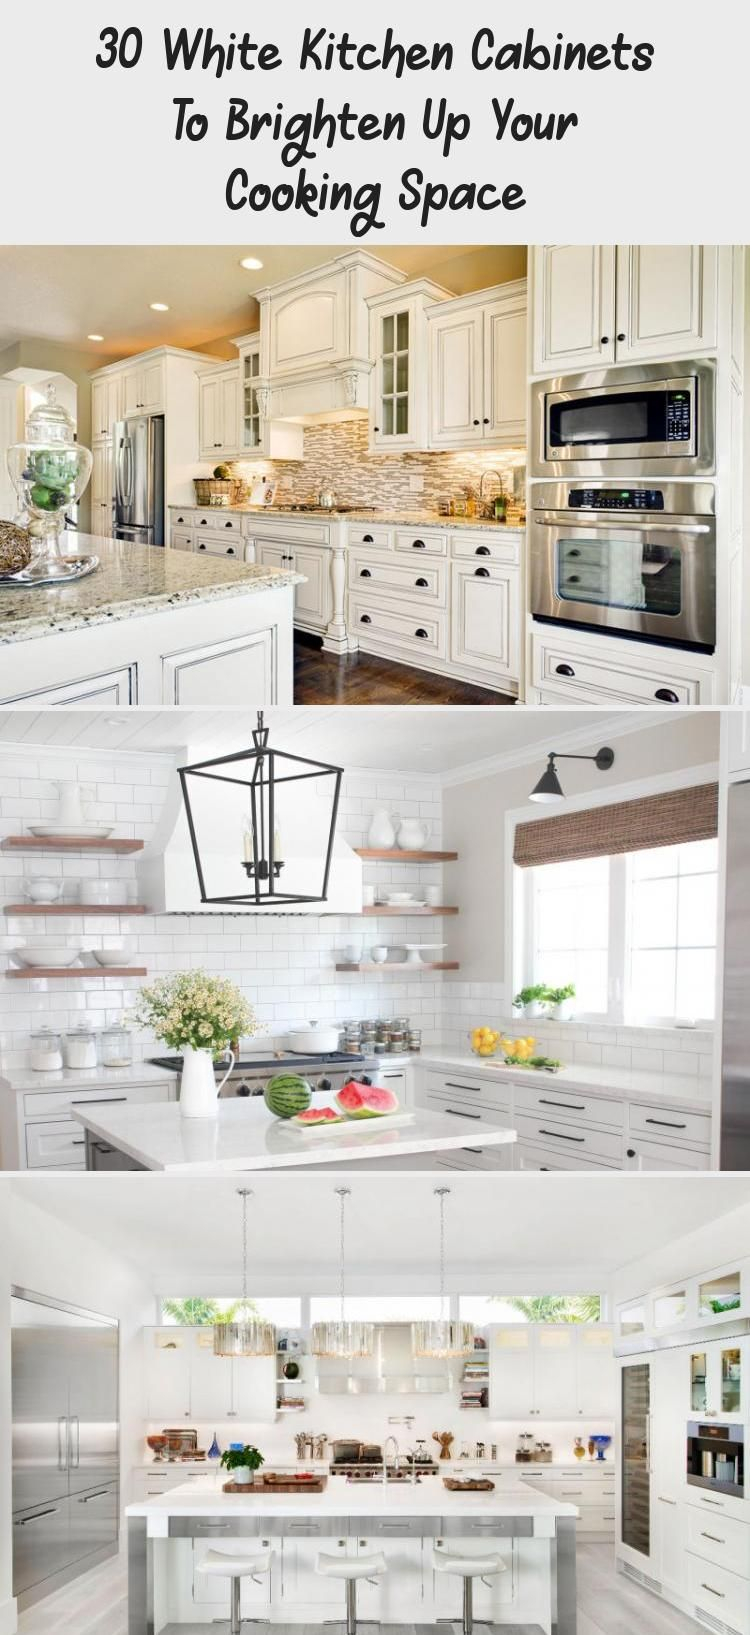 30 White Kitchen Cabinets To Brighten Up Your Cooking Space Decorations White Modern Kitchen White Kitchen Table Set White Kitchen Cabinets White kitchen cabinet set